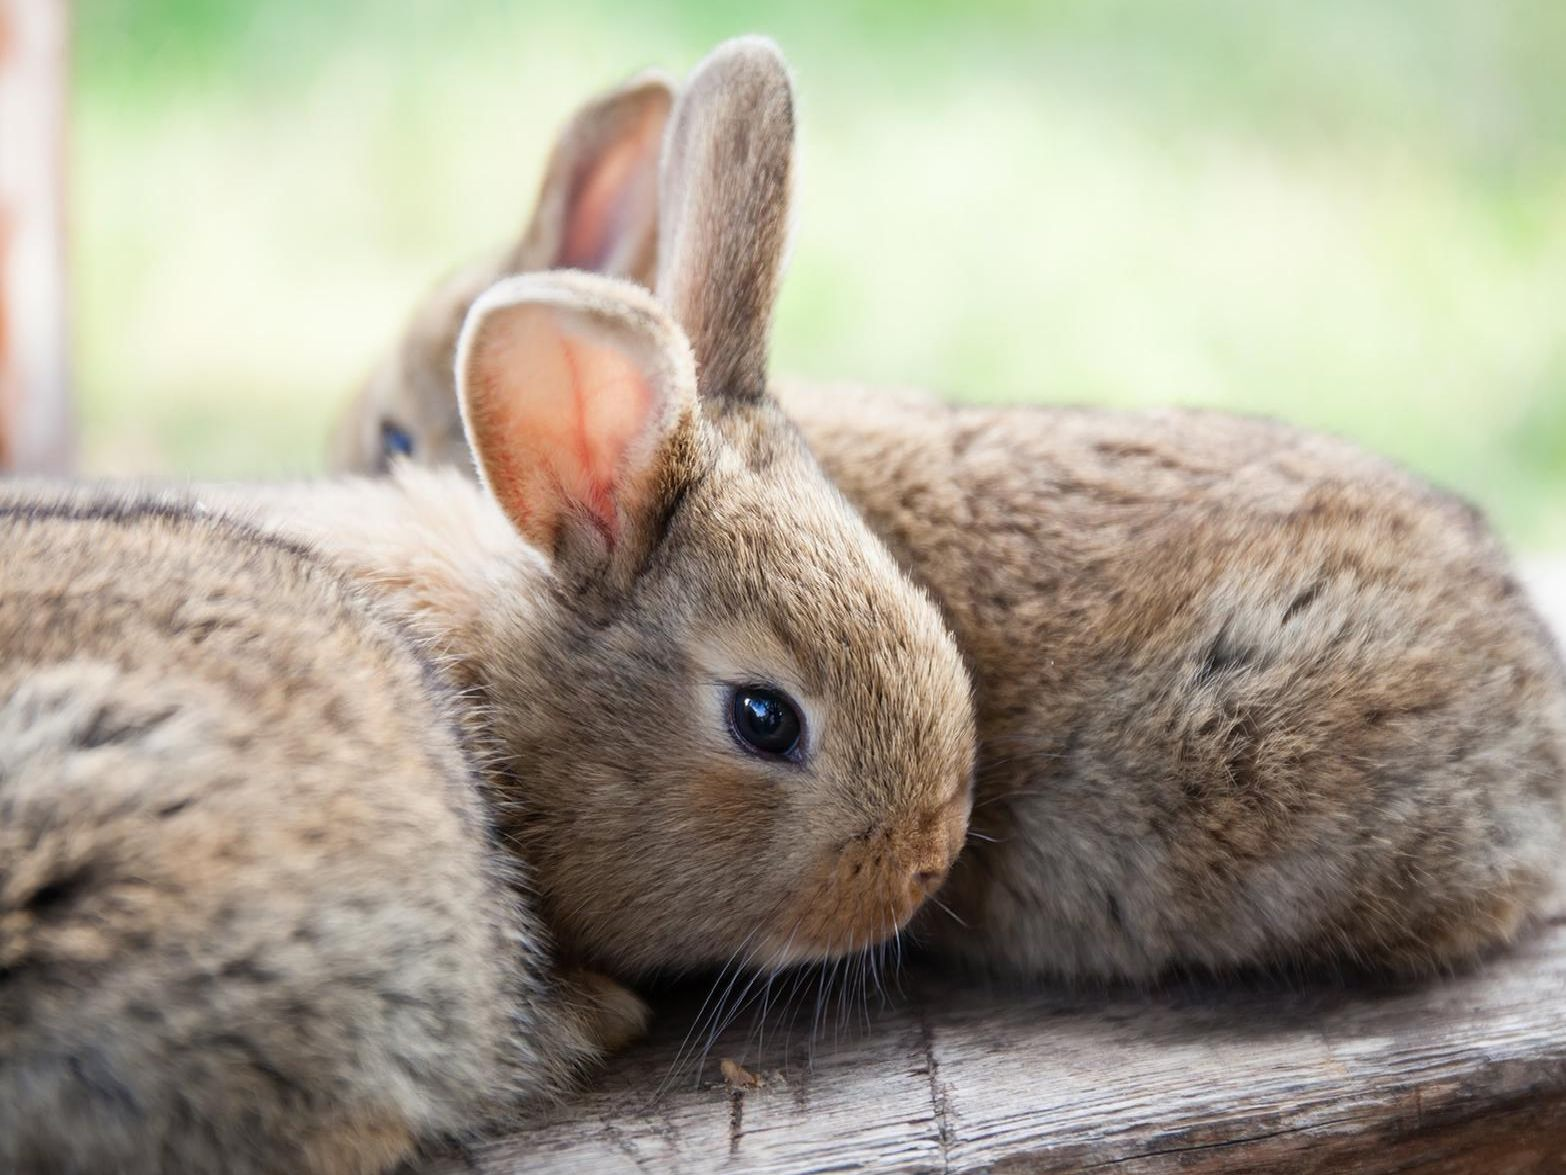 The campaign Rabbit Awareness Weeks runs from Saturday June 1 to Sunday June 9